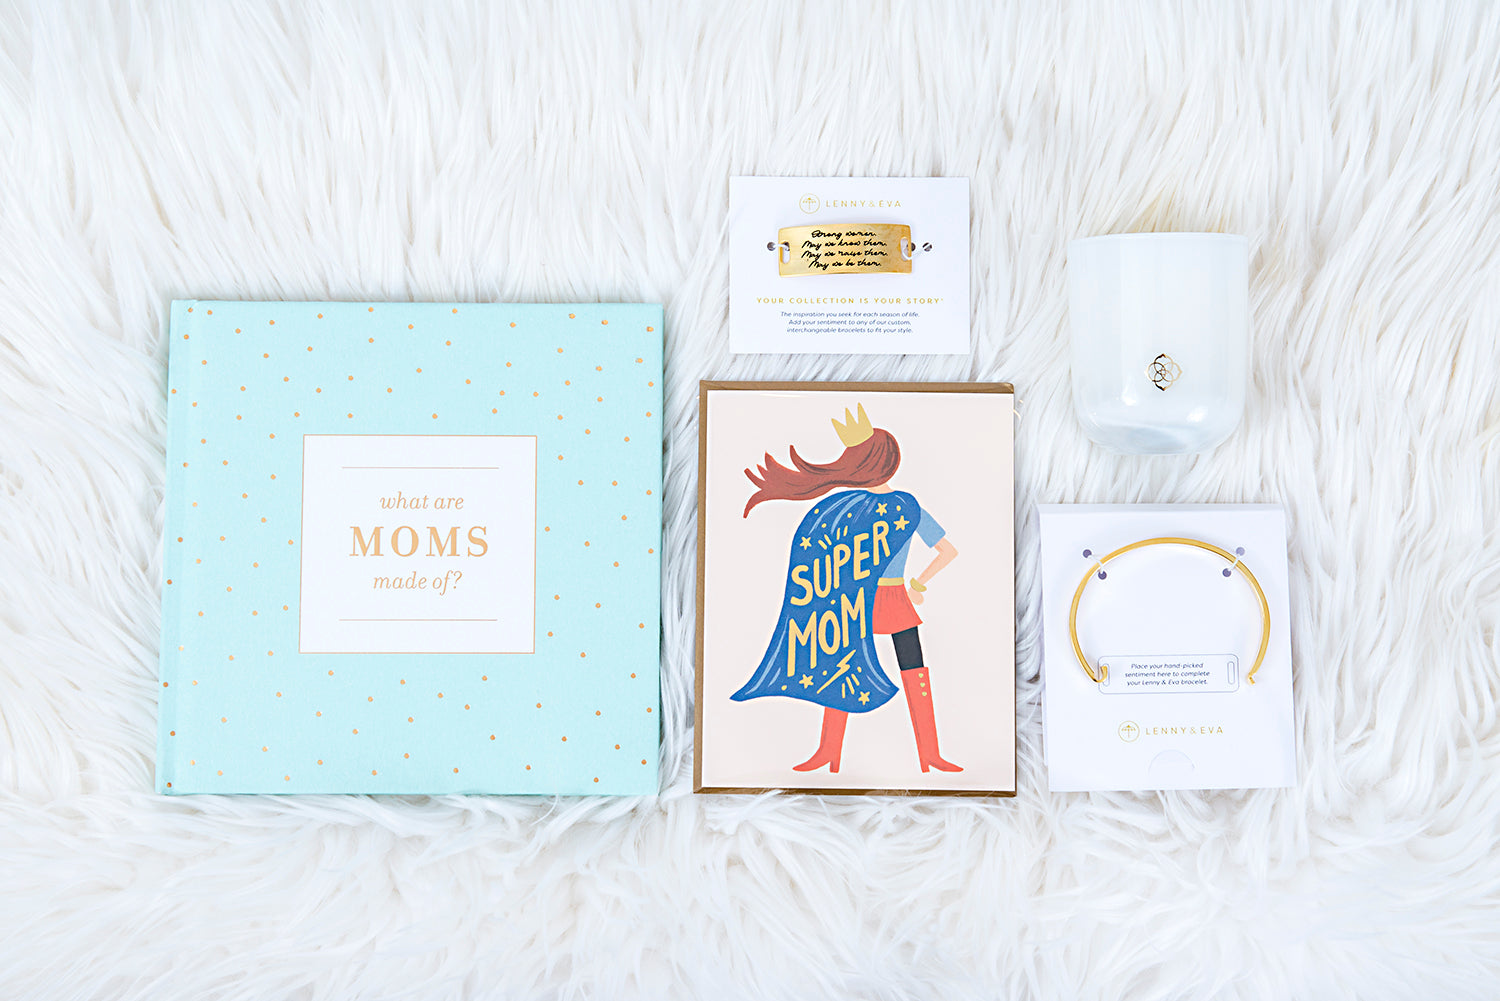 Mother's Day gift ideas at Eccentrics Boutique. Gifts for super mom.